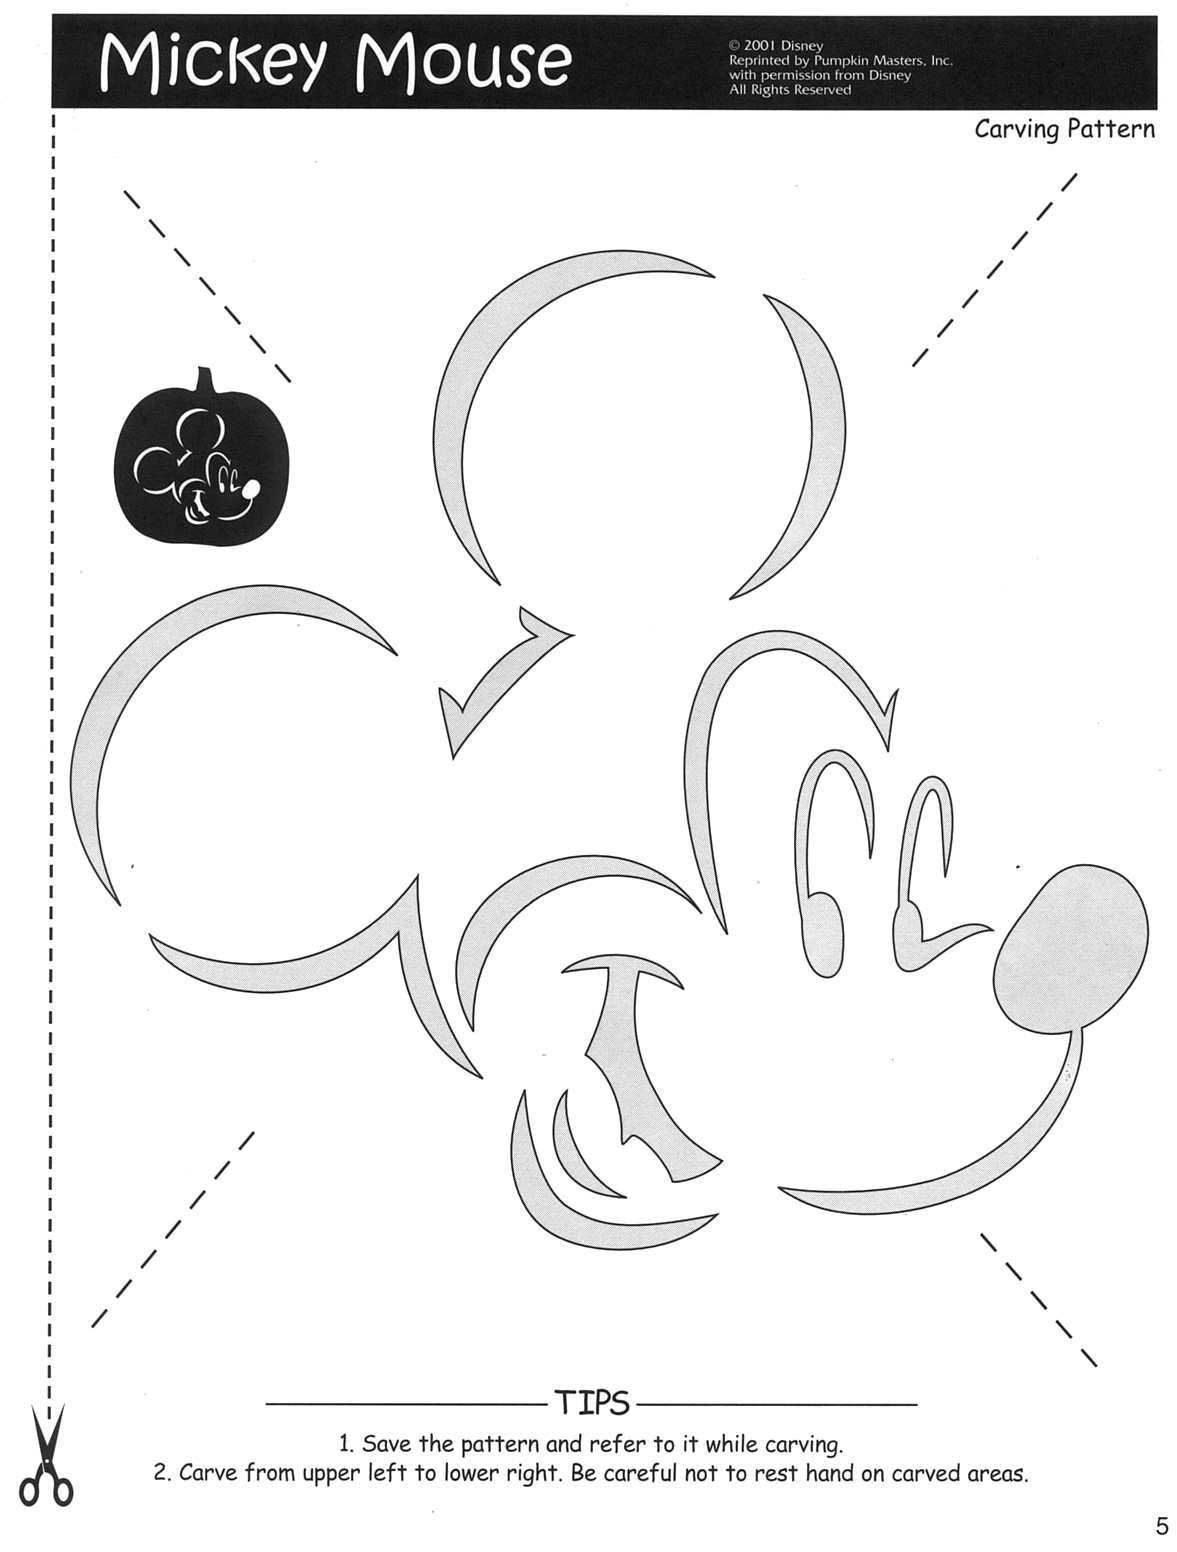 100+ Free Disney Halloween Pumpkin Carving Stencil Templates W - Free Pumpkin Carving Patterns Disney Printable